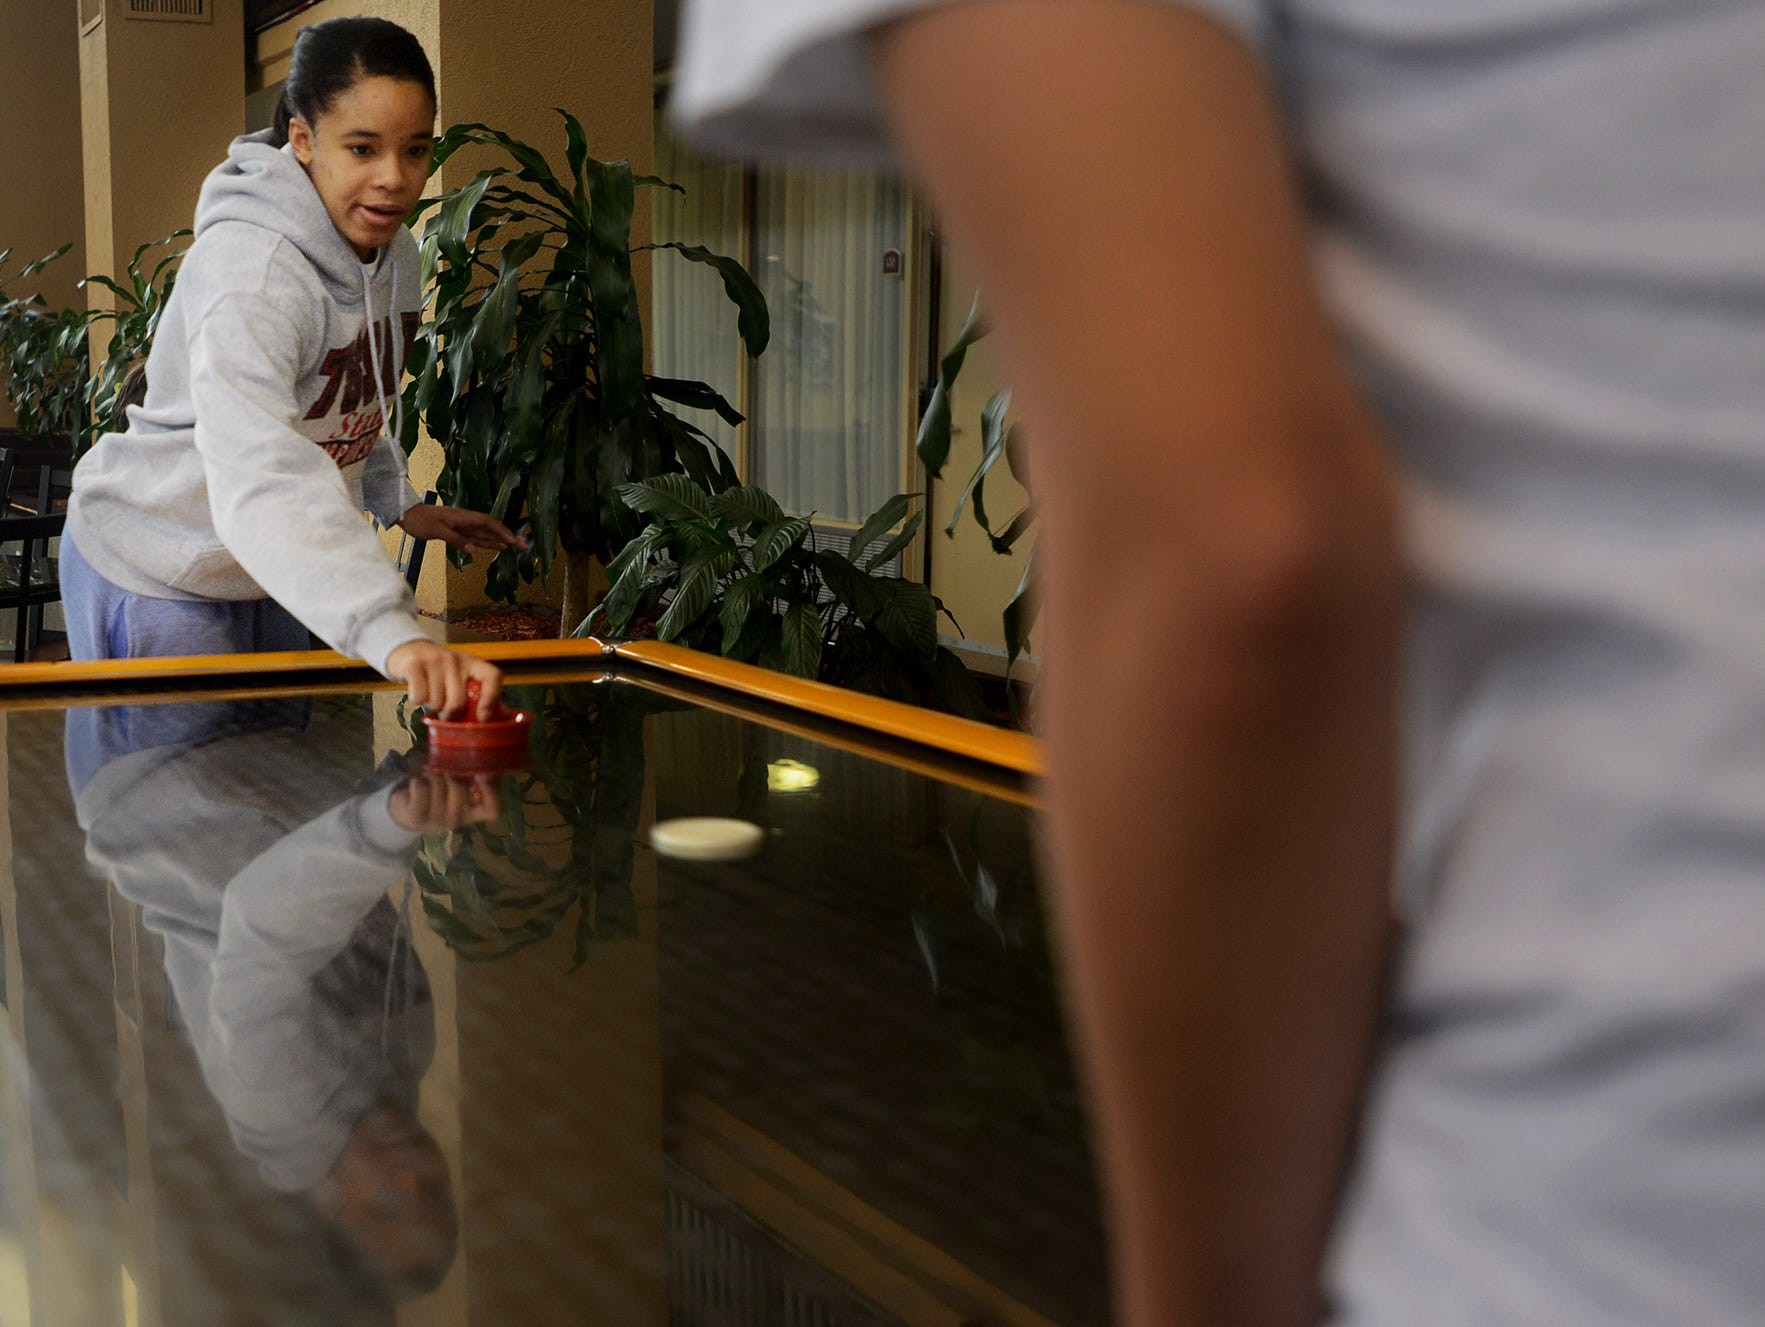 Riverside Lady Panther Deidre McElrath plays a game of air hockey with a teammate during downtime at their hotel, Thursday. The team was scheduled to play their Class AA quarterfinal game at 9:30am but will now play their game Friday at 11am.